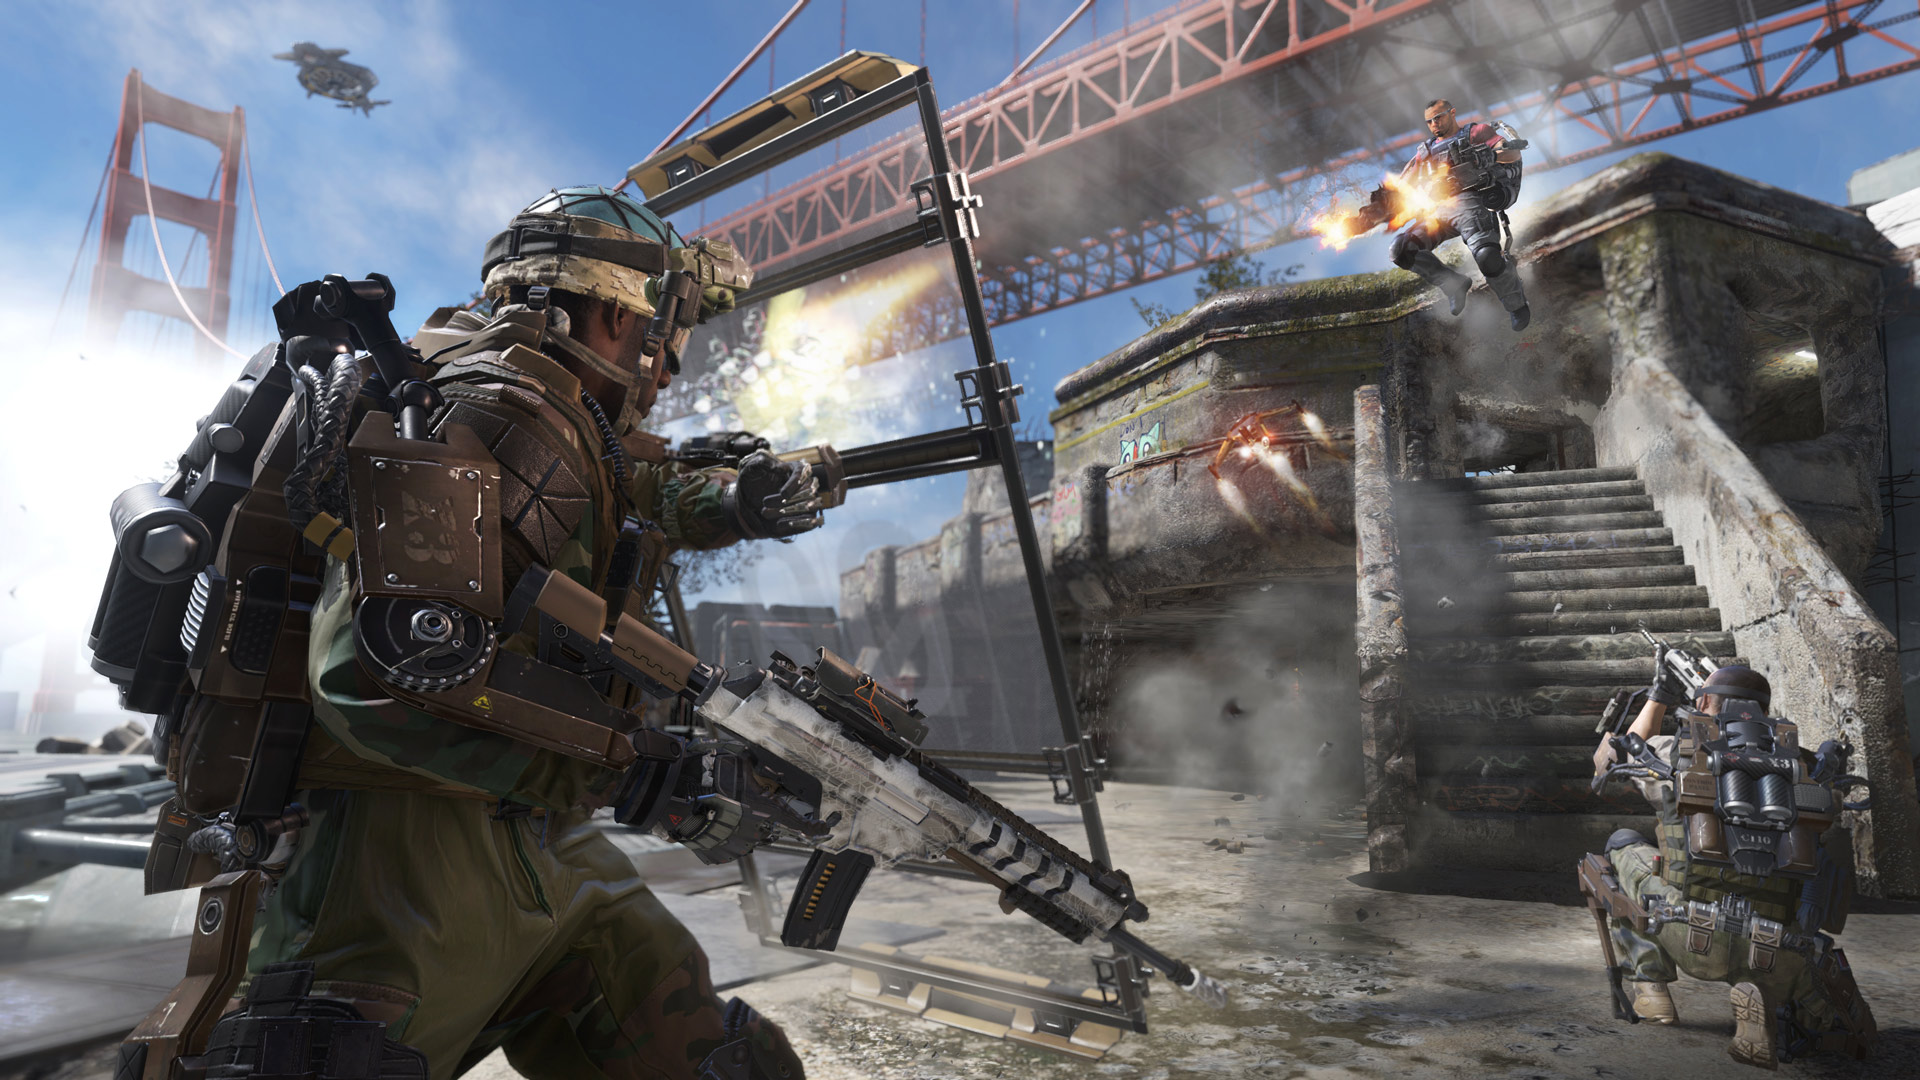 Among the best PS3 games, the CoD saga could not be missed